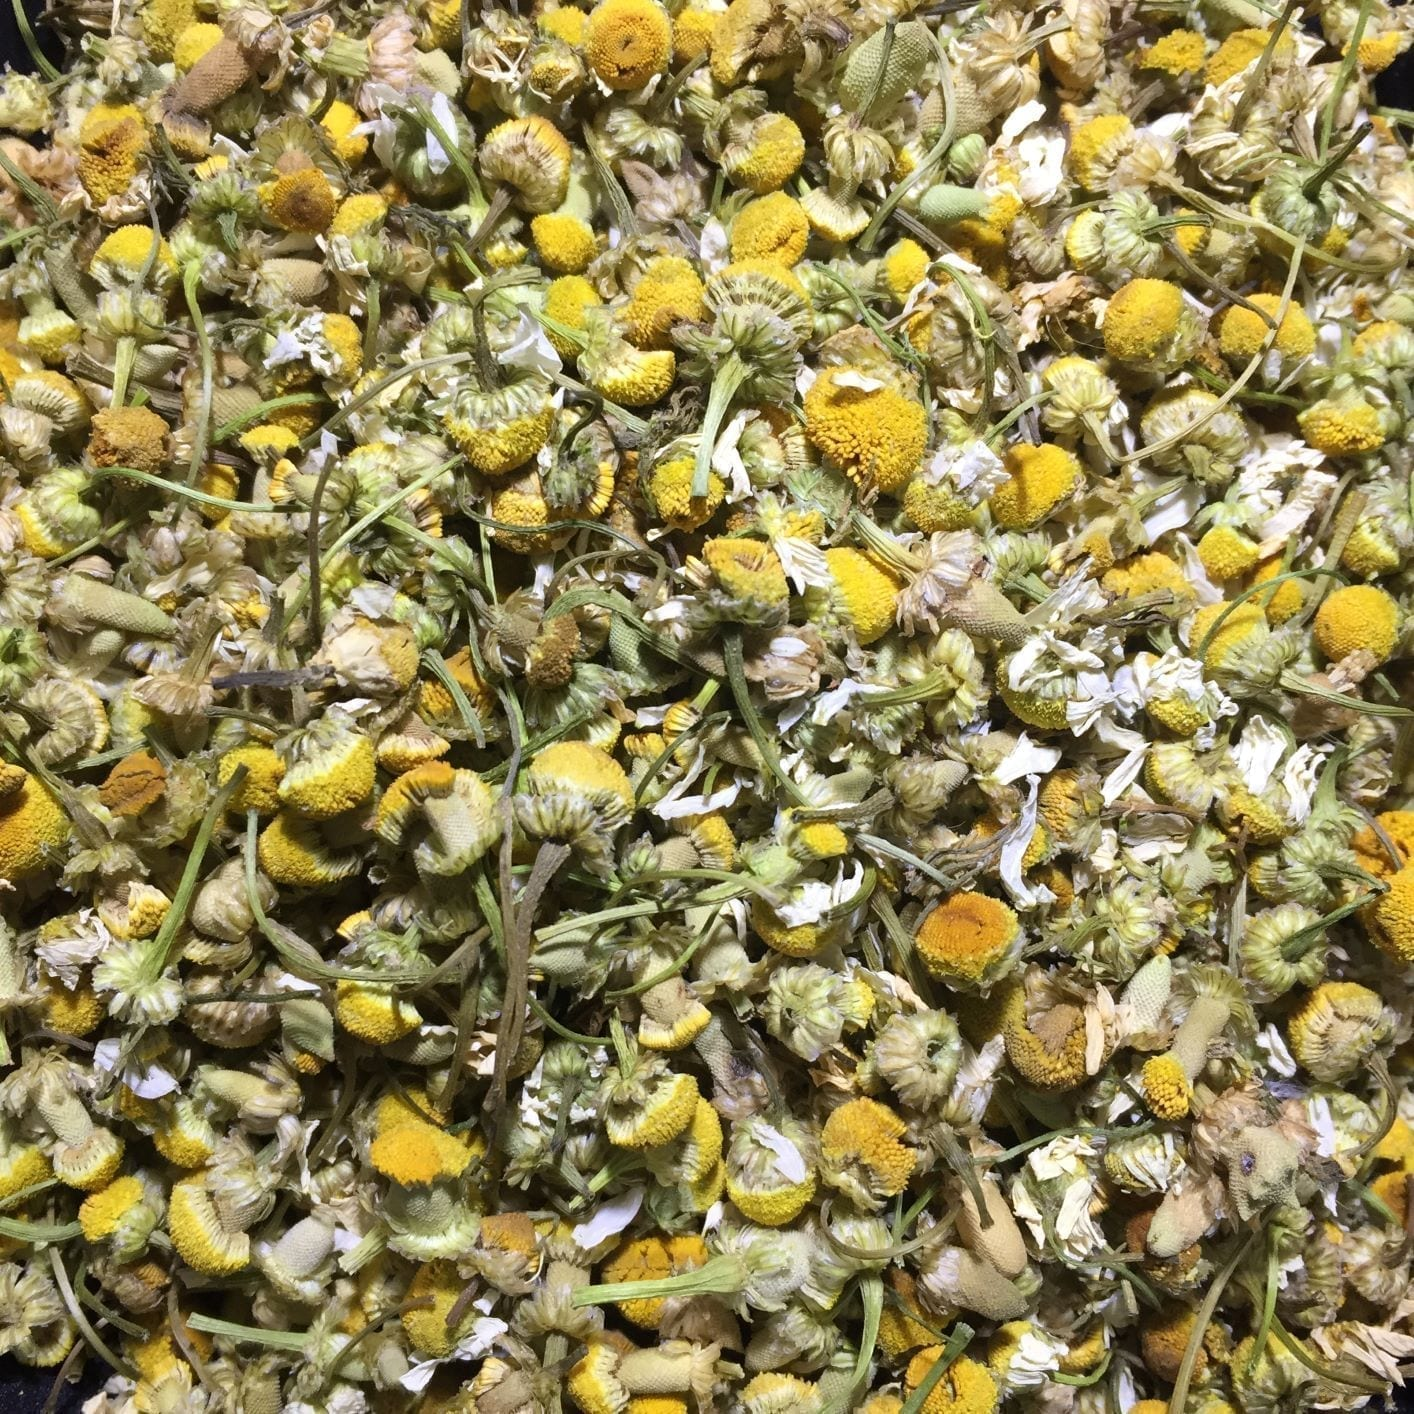 Dried Herbs & Flowers for Rabbits